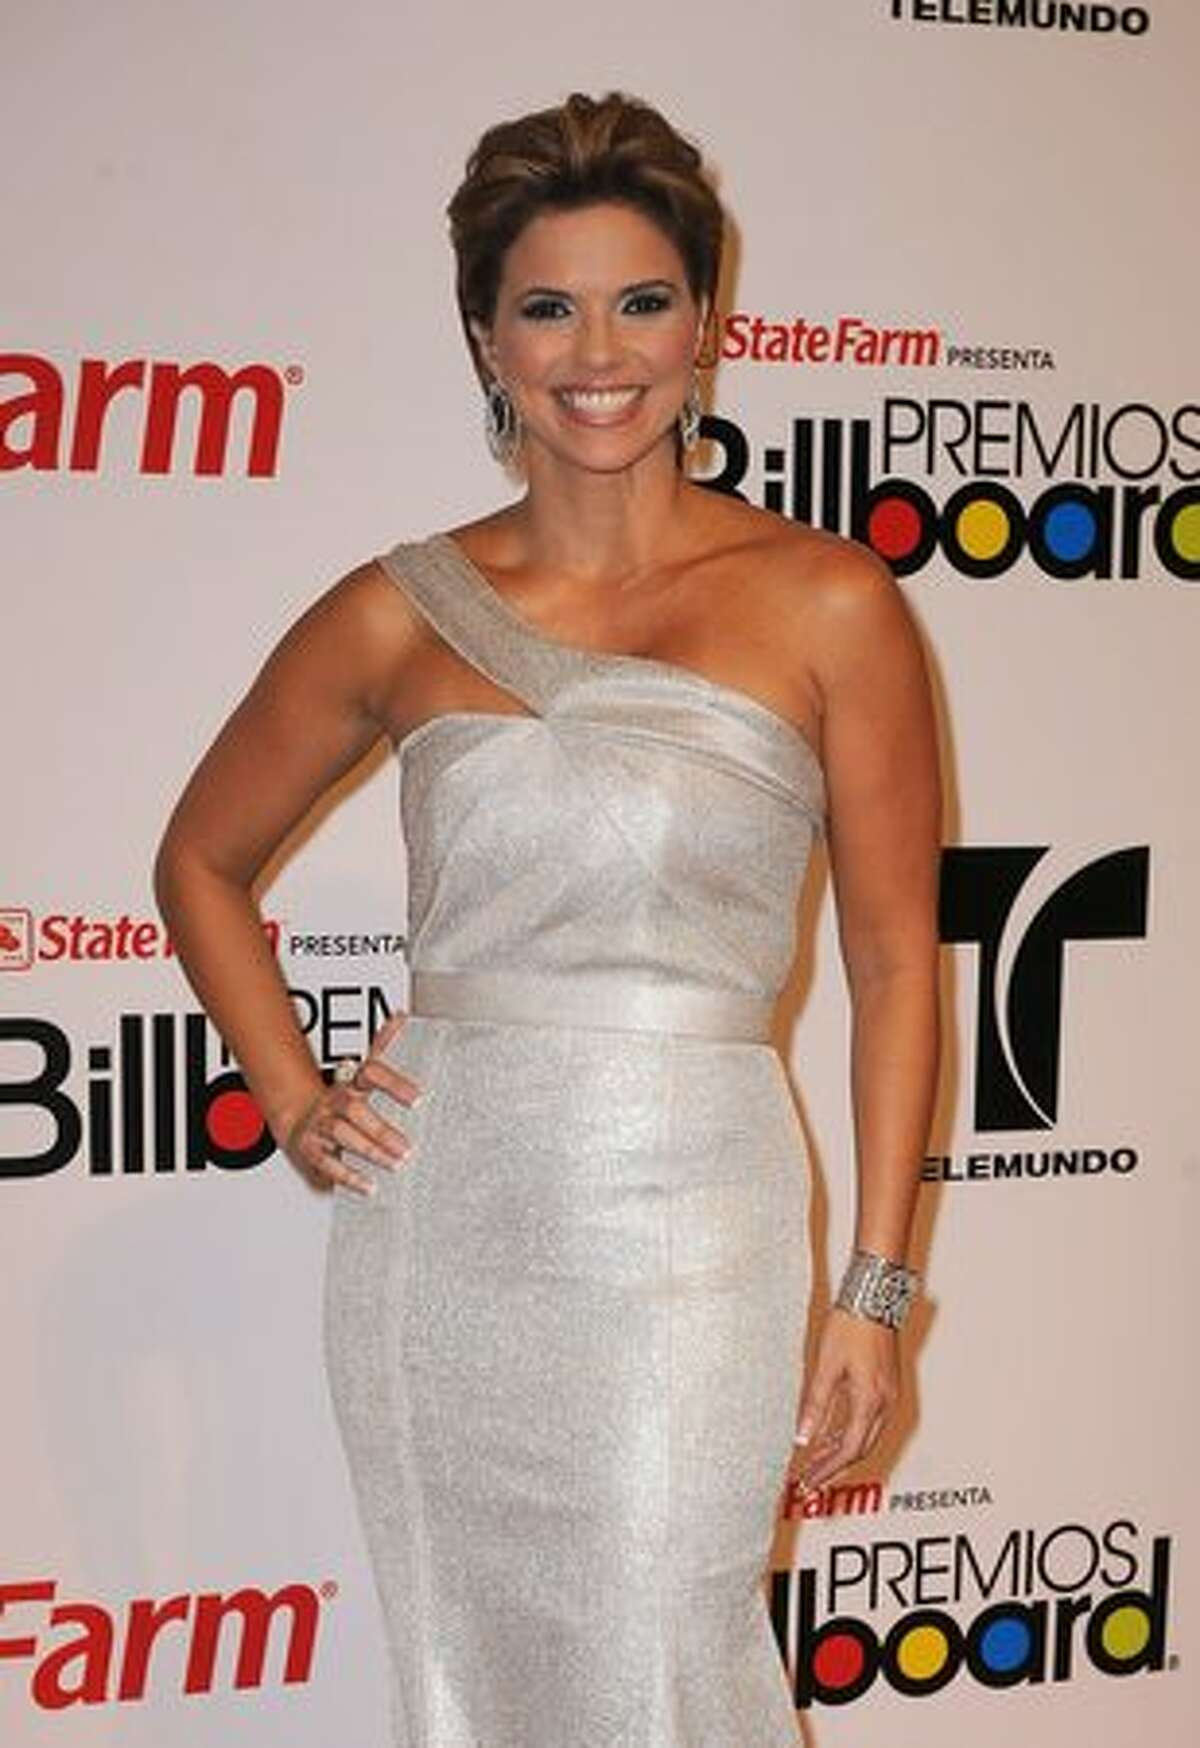 TV personality Rashel Diaz attends the 2010 Billboard Latin Music Awards at Coliseo de Puerto Rico José Miguel Agrelot on April 29, 2010 in San Juan, Puerto Rico.